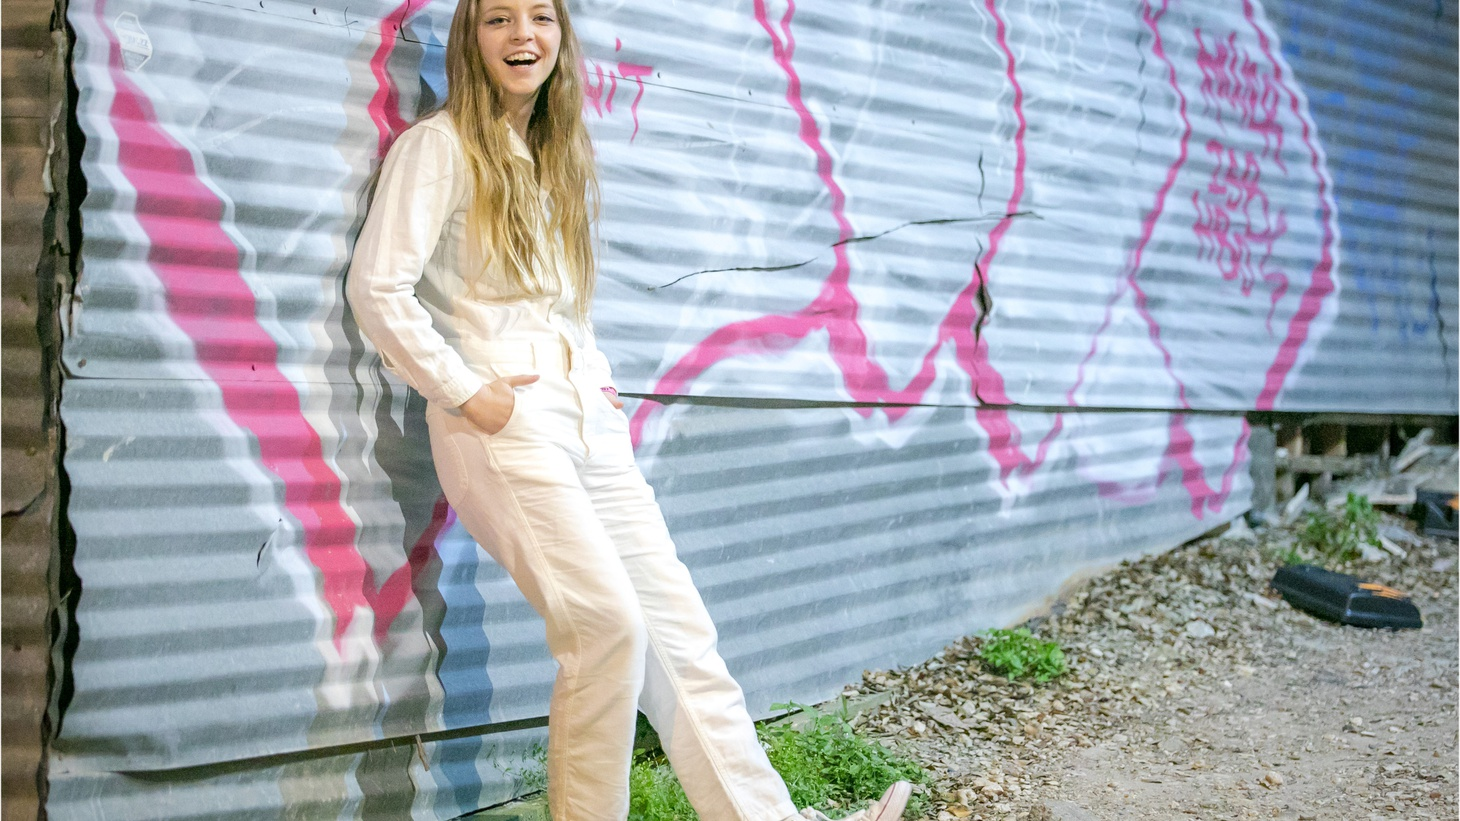 Jade Bird is one of the most talked about artists of the moment. She more than lives up to the hype with incredible energy, wit and wisdom far beyond her 20 years. We host a live set before she heads out to the desert for the Stagecoach Festival.